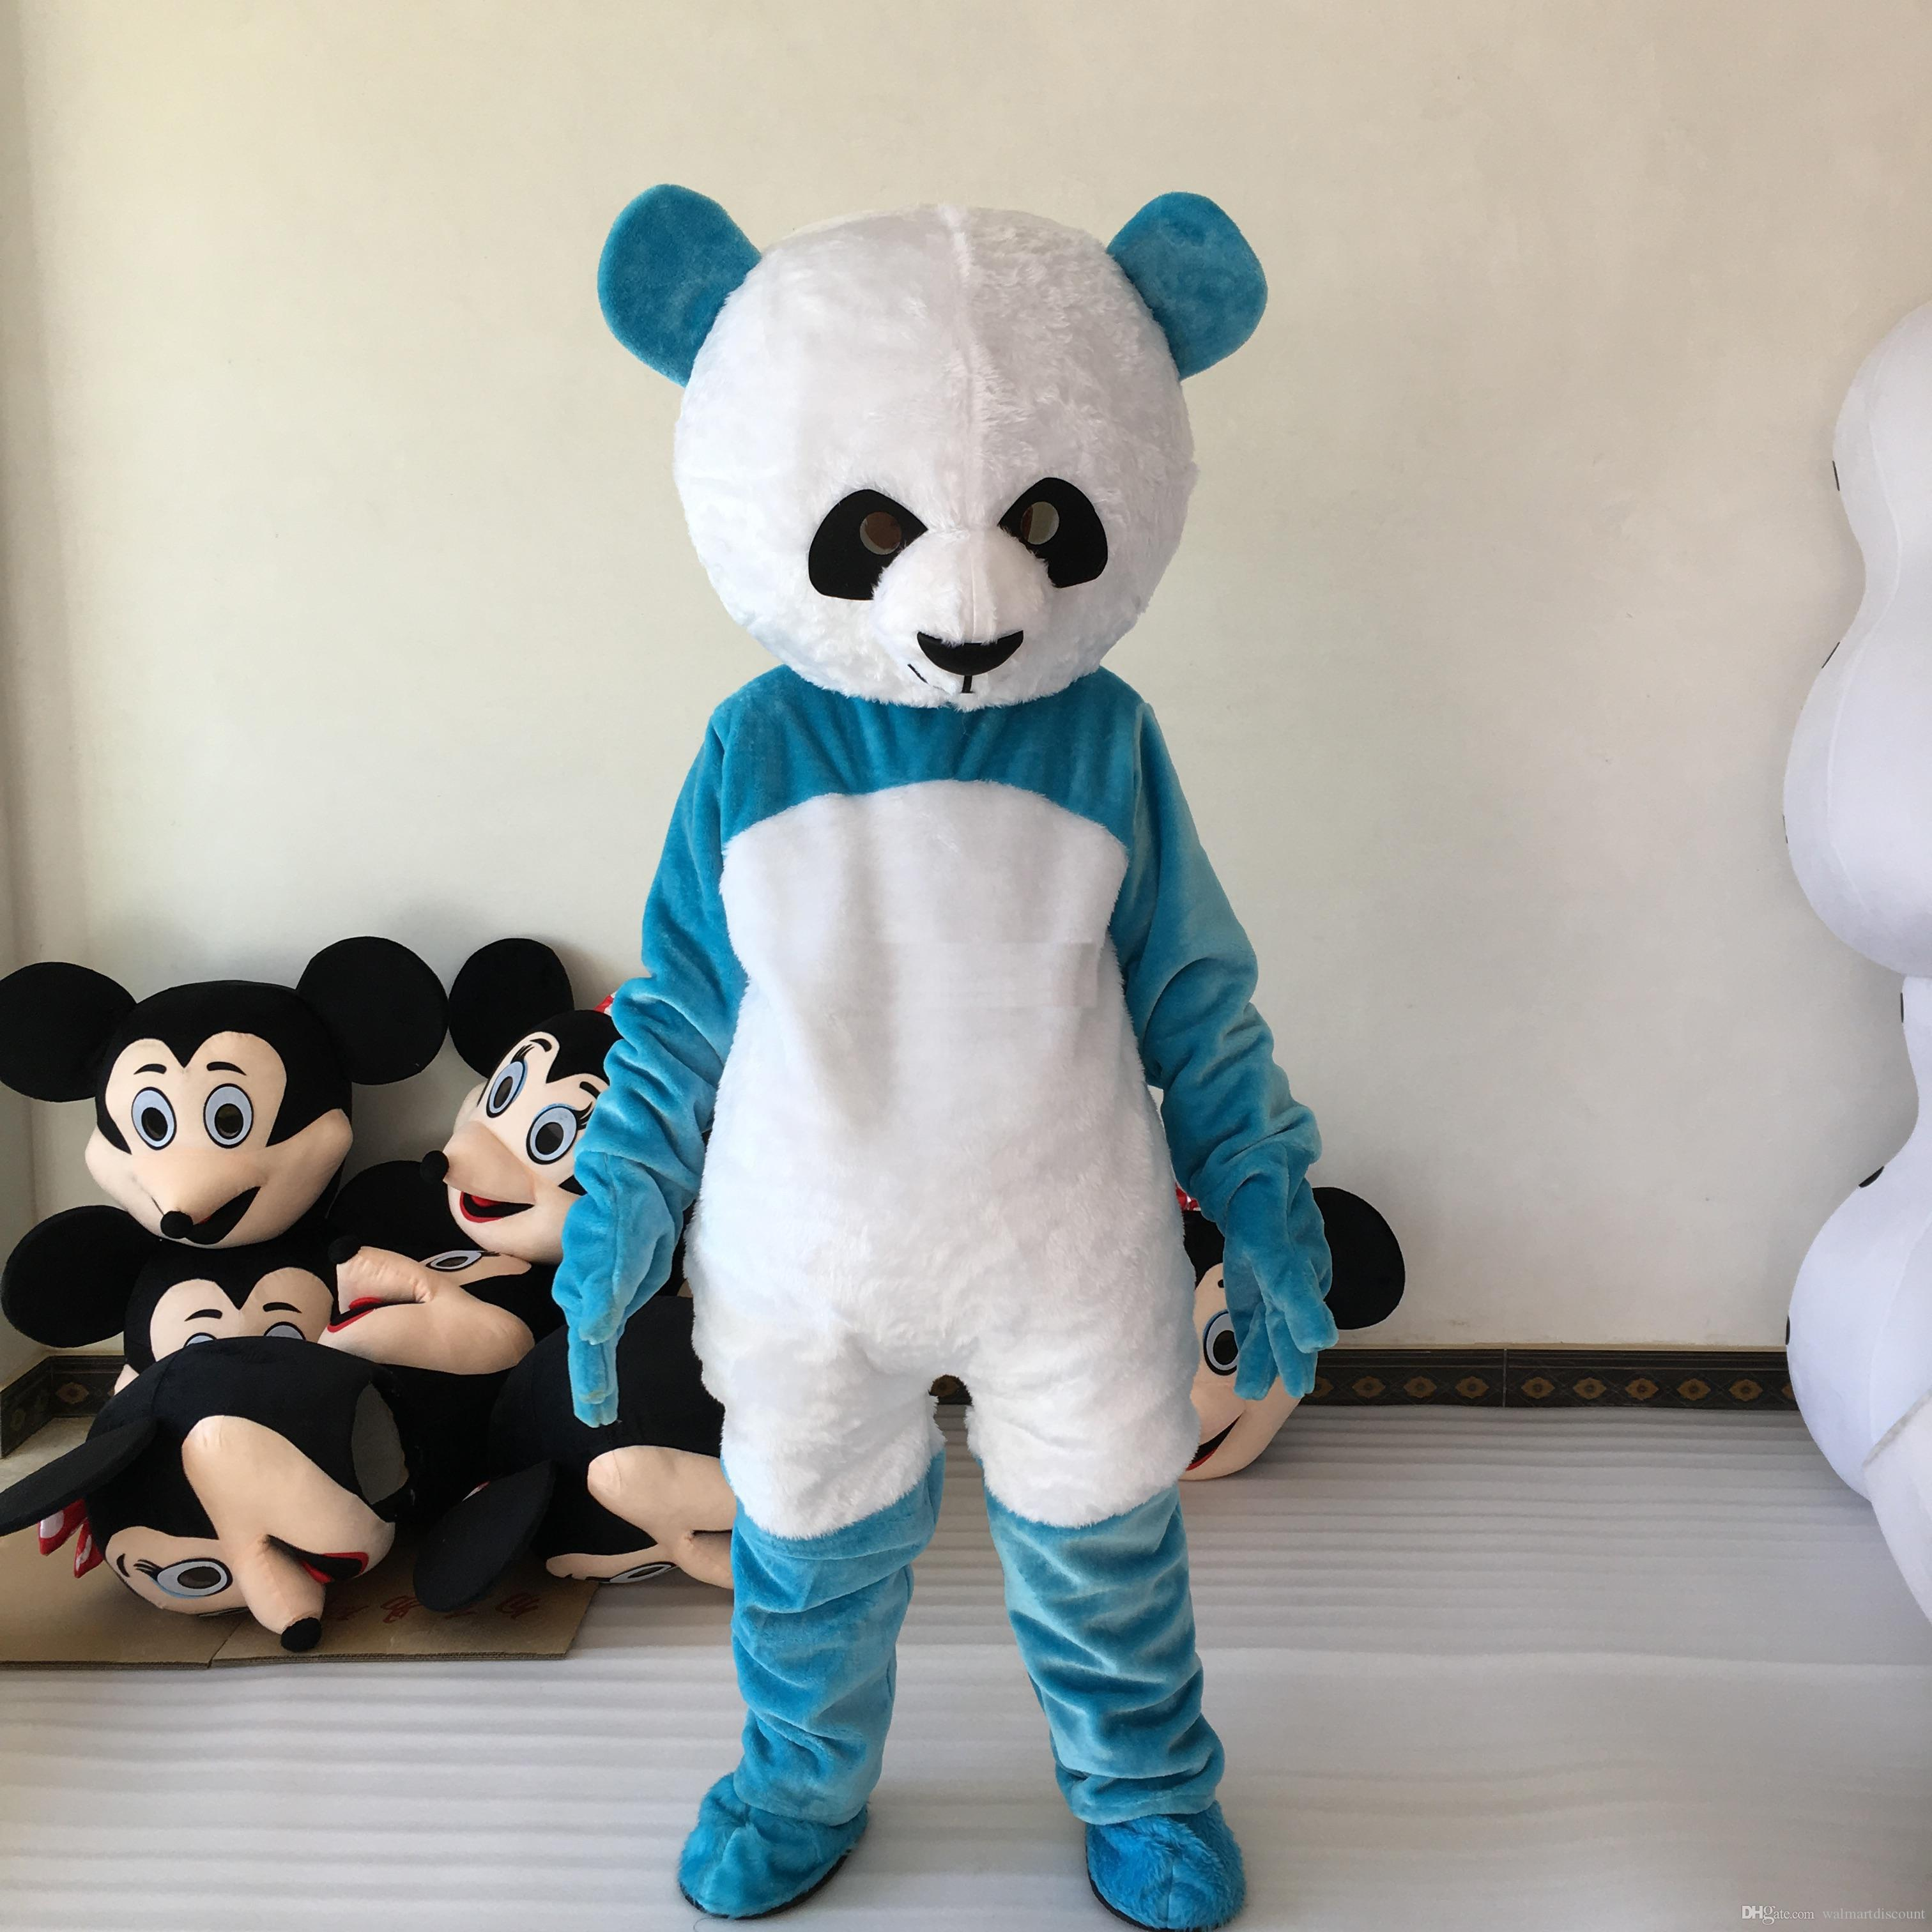 2017 Factory direct sale blue panda mascot costume Christmas Halloween animal funny bear mascot Costume Adult Size